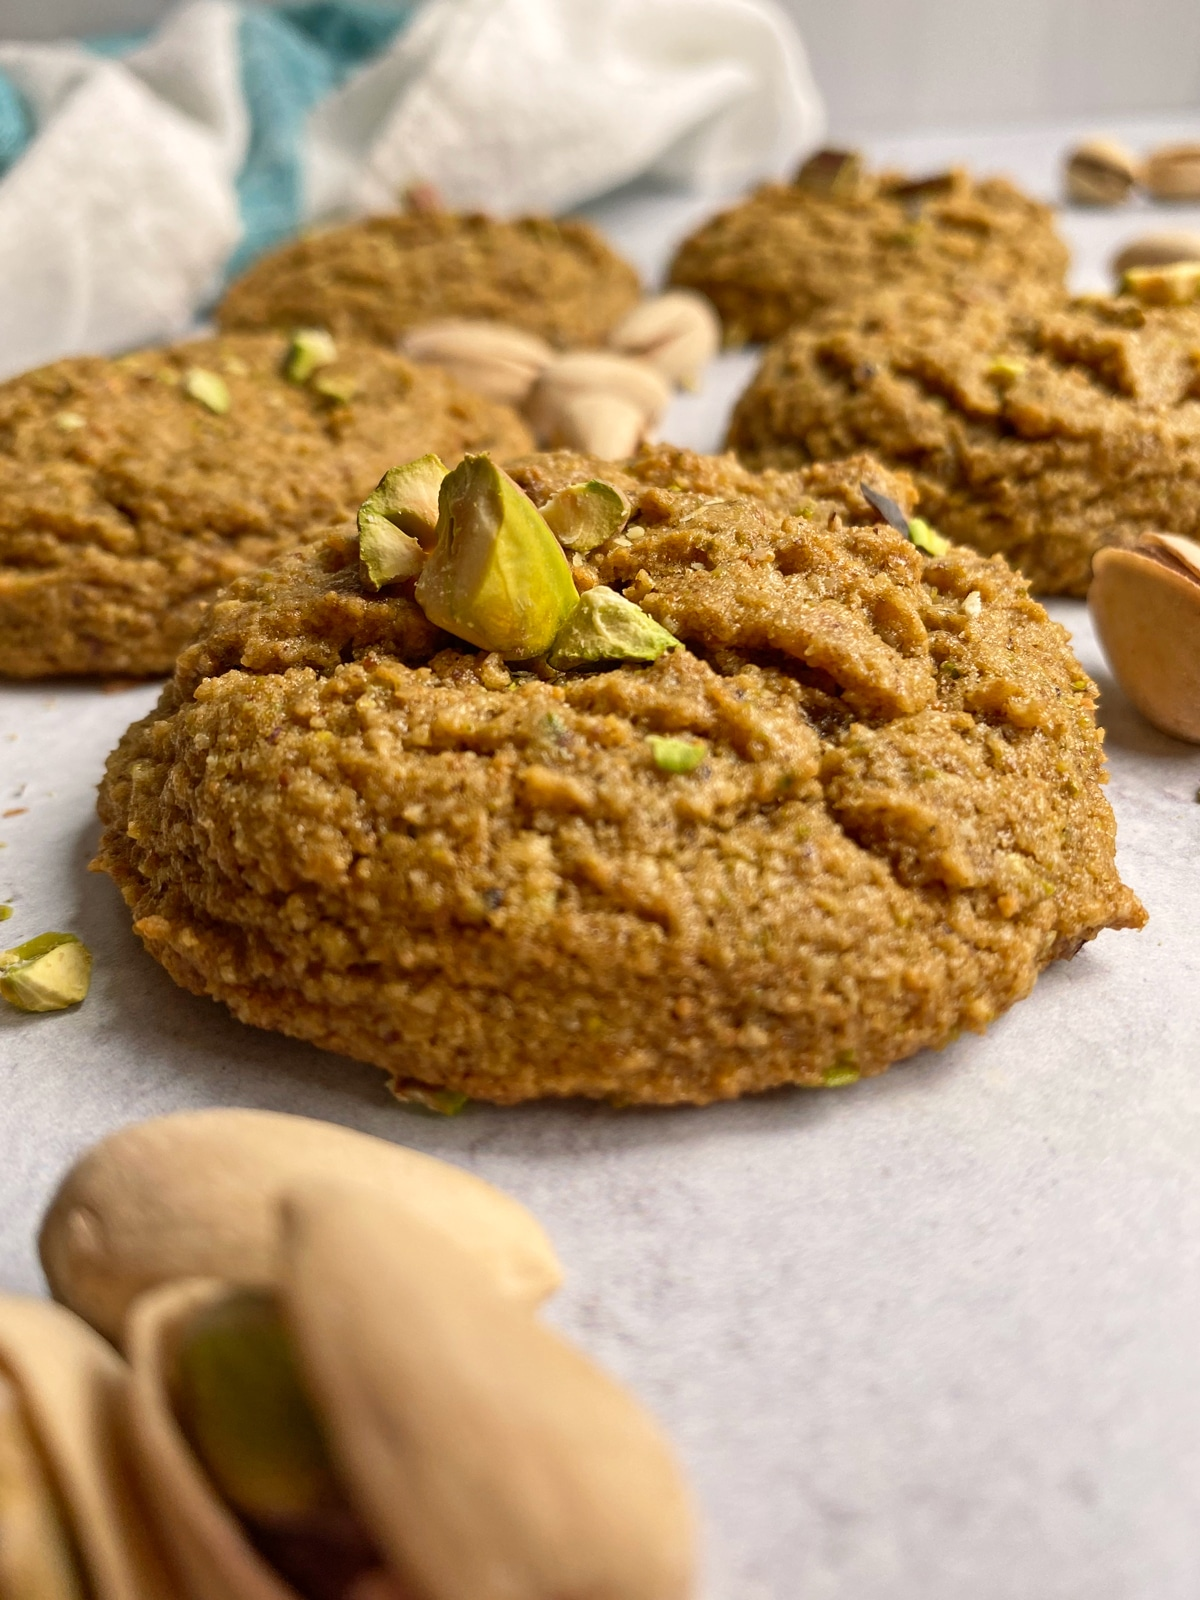 side view of pistachio cookie with crushed pistachios on top